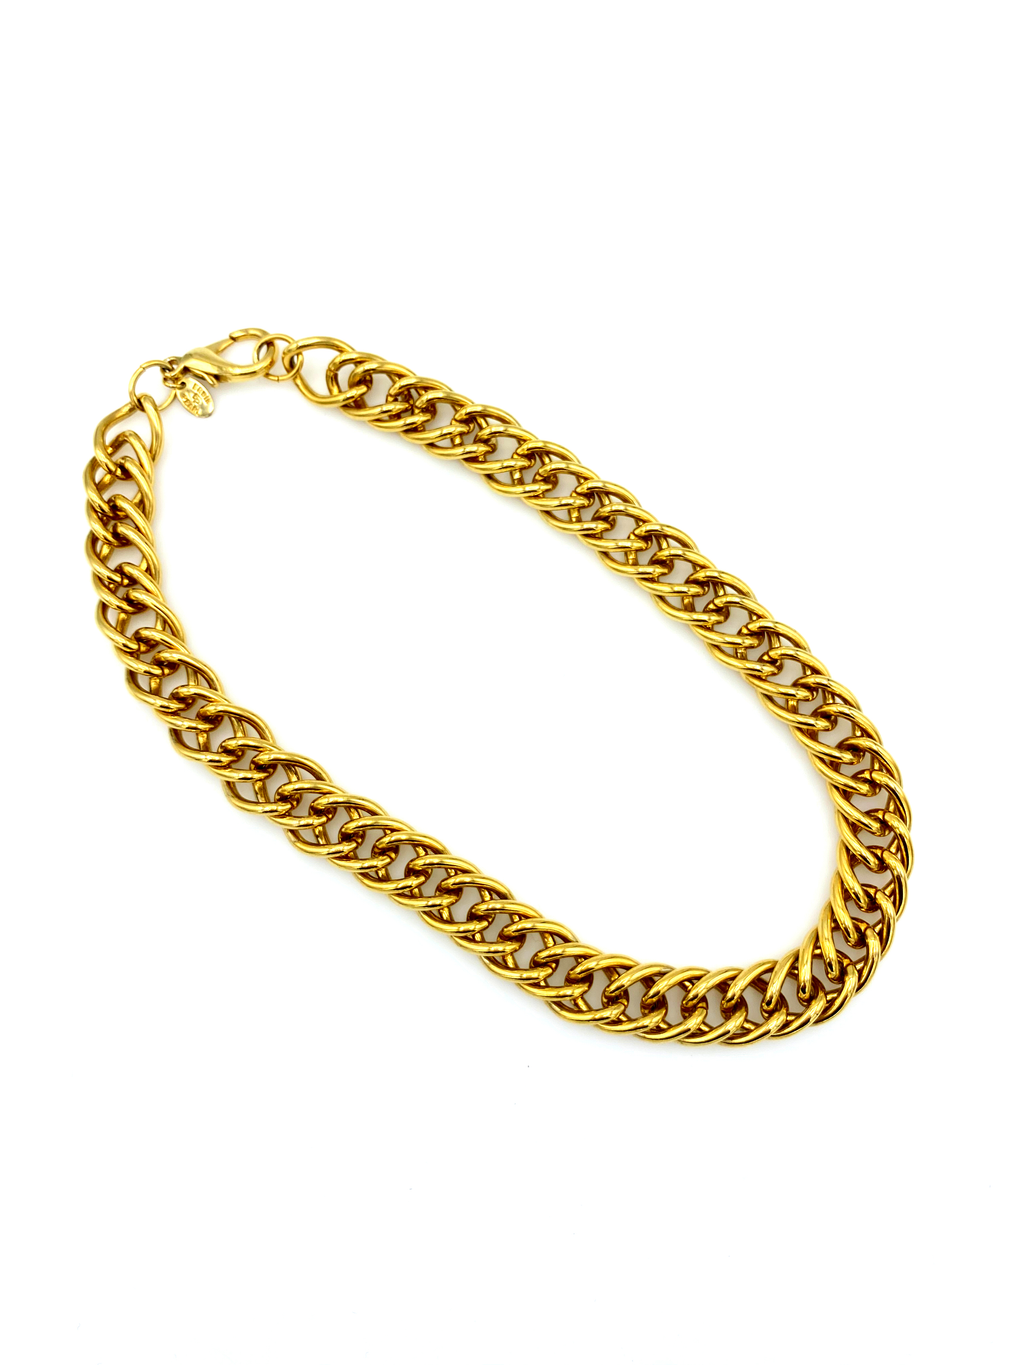 Vintage Heavy Link Gold Curb Chain Necklace-Sustainable Fashion with Vintage Style-Trending Designer Fashion-24 Wishes